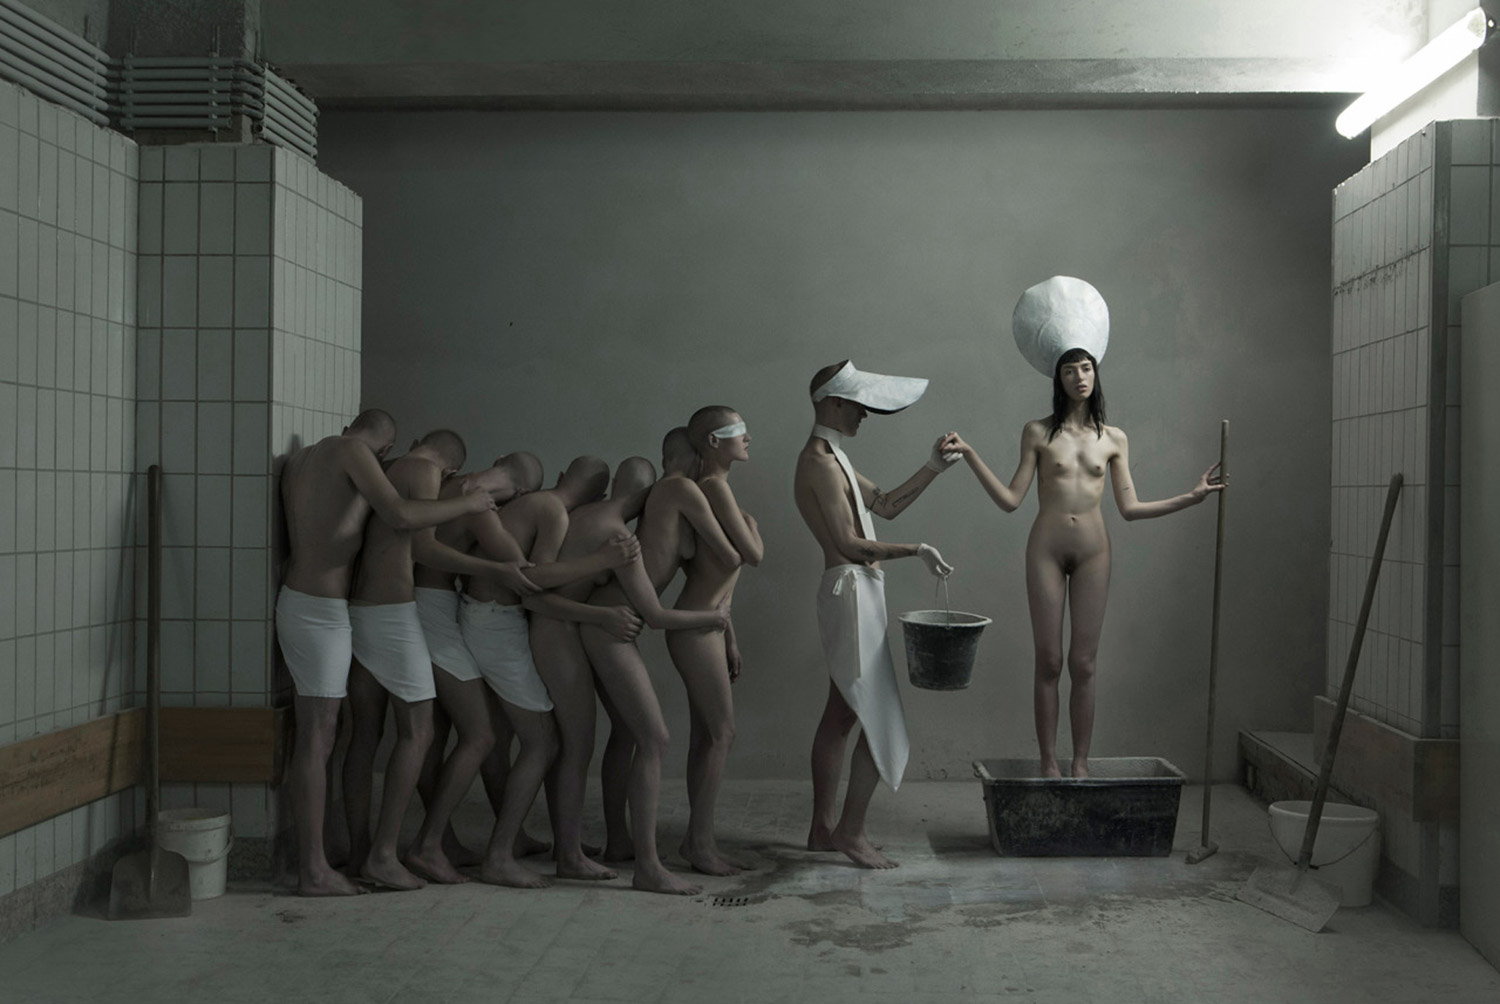 Evelyn Bencicova, Touch Me, I'm Sick, collaboration with UY, eerie nude lineup in hospital setting